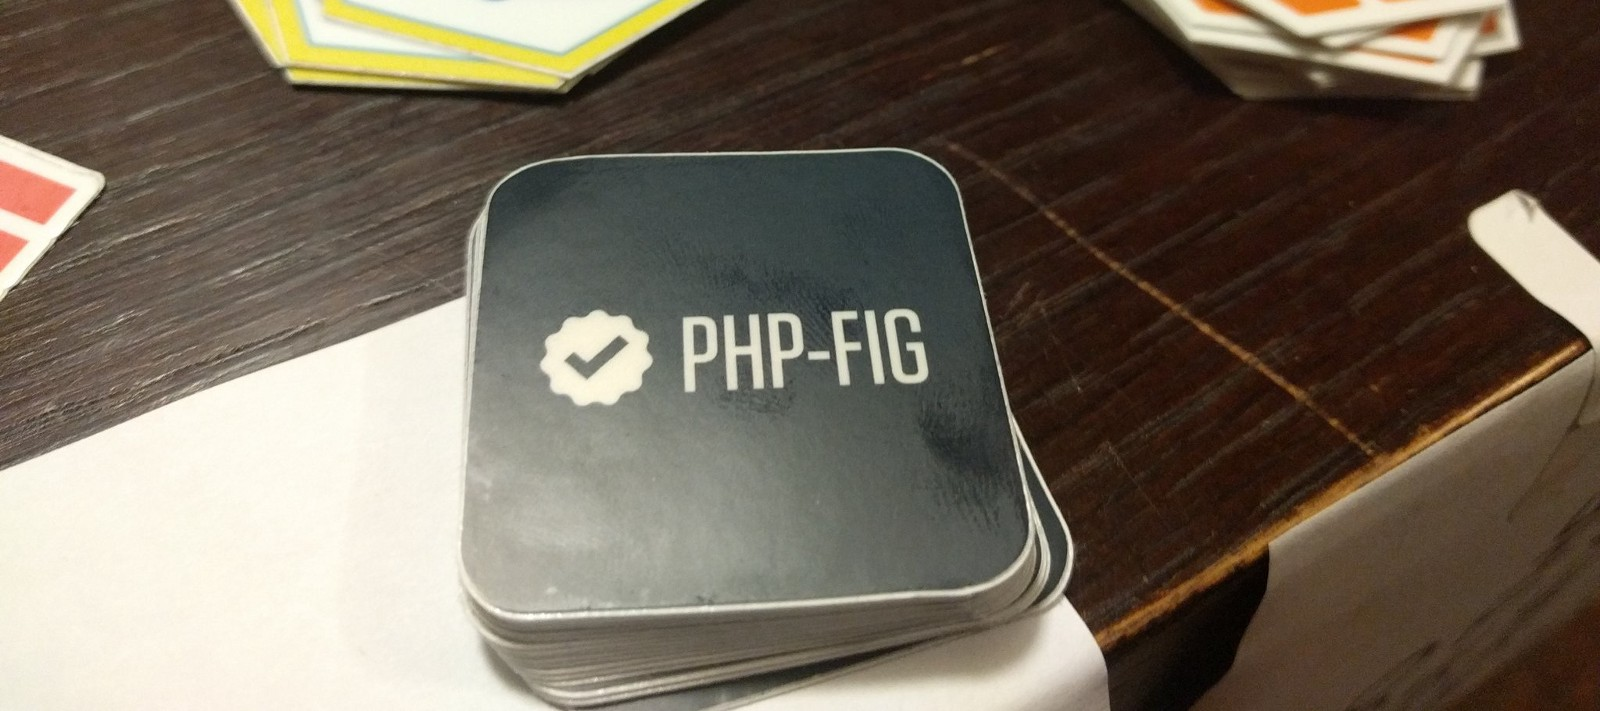 PHP-FIG stickers, shared at the PHPDay front desk